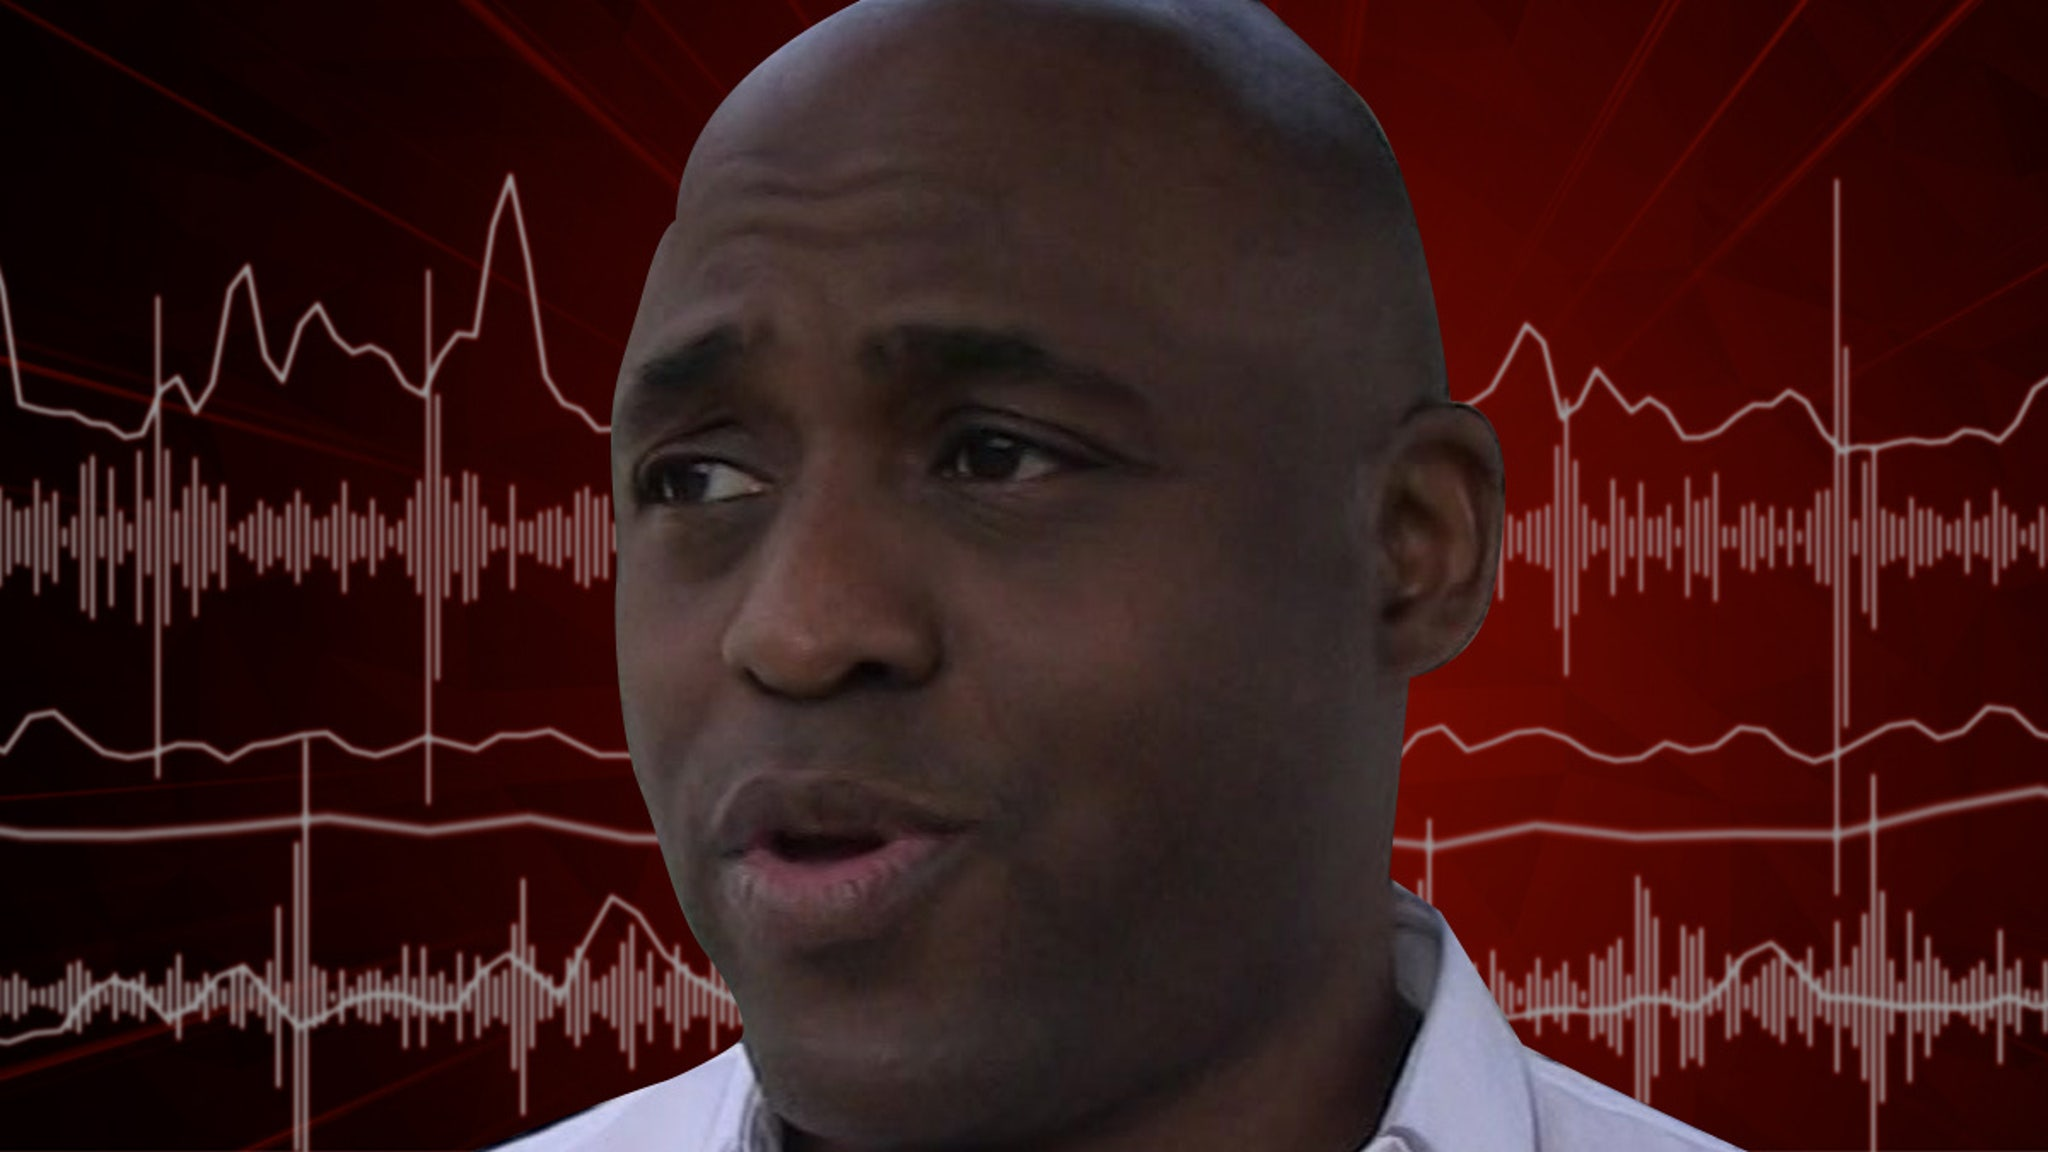 Wayne Brady Gets Racist, Expletive-Laced Voicemail at CBS Studio thumbnail